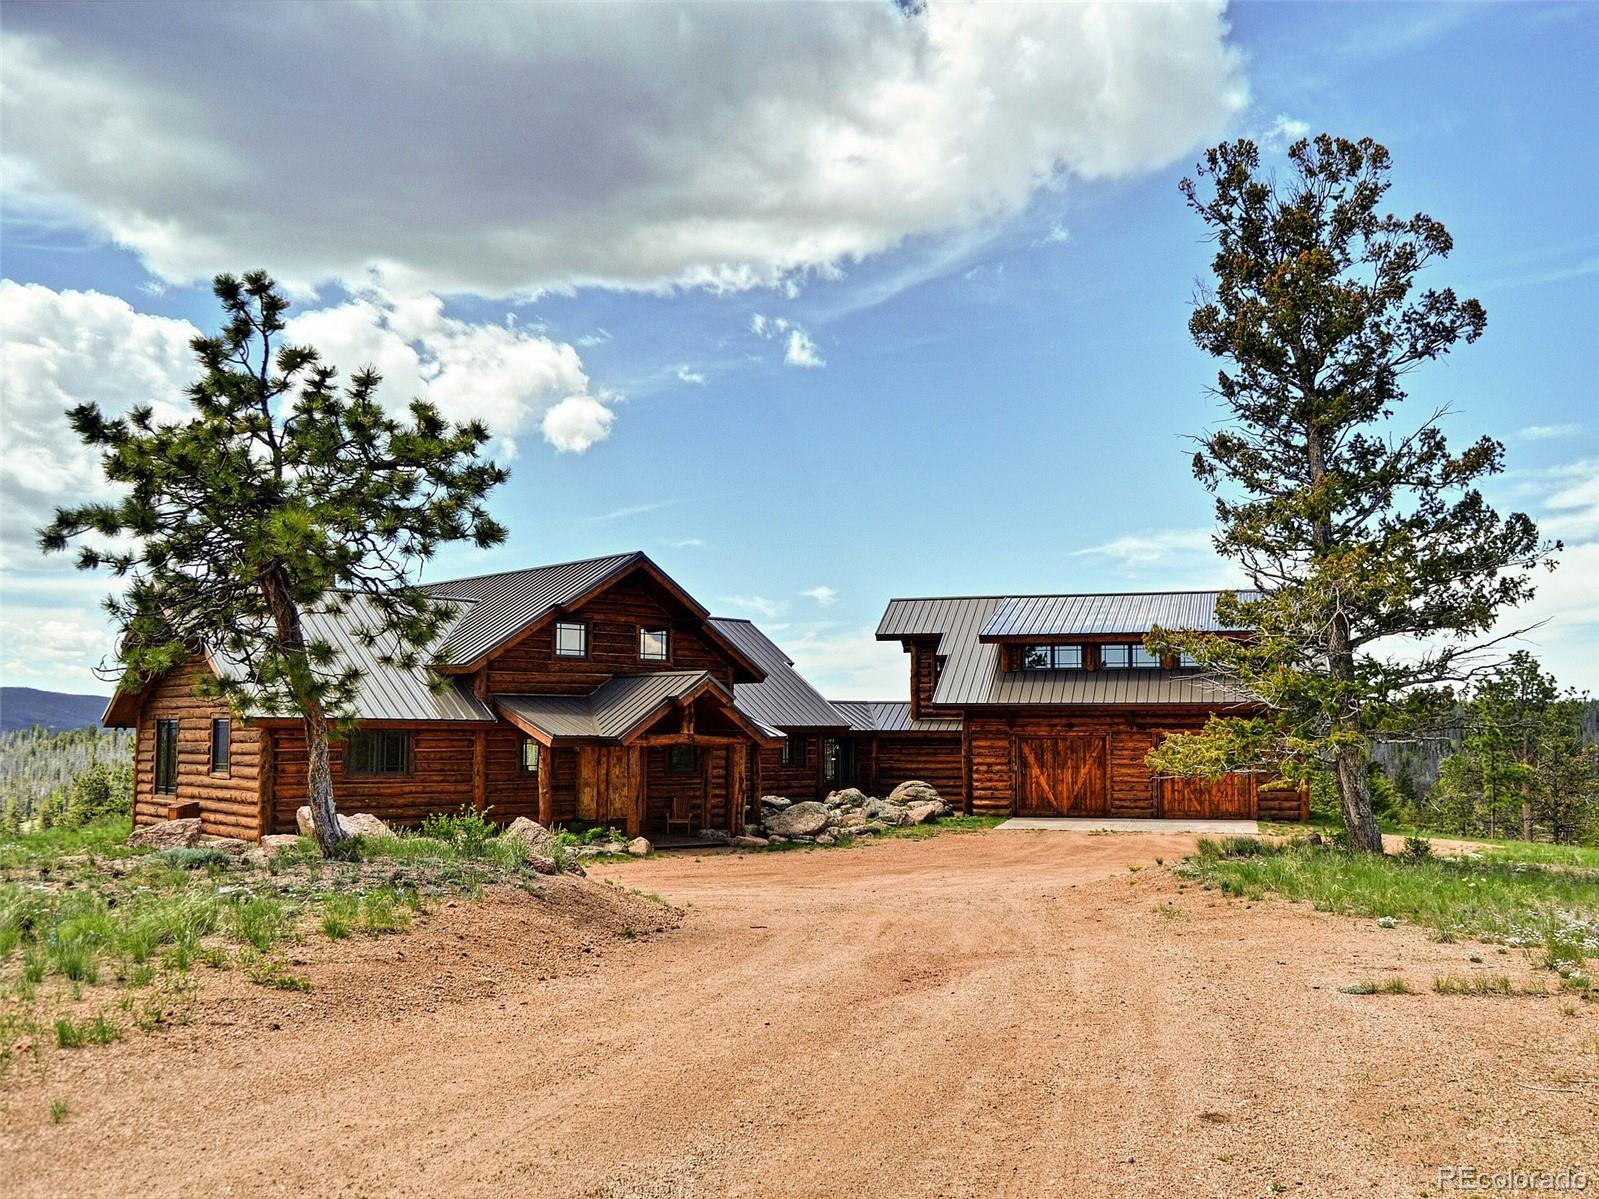 376 Deer Crossing Rd, Tie Siding, WY 82084 - Tie Siding, WY real estate listing